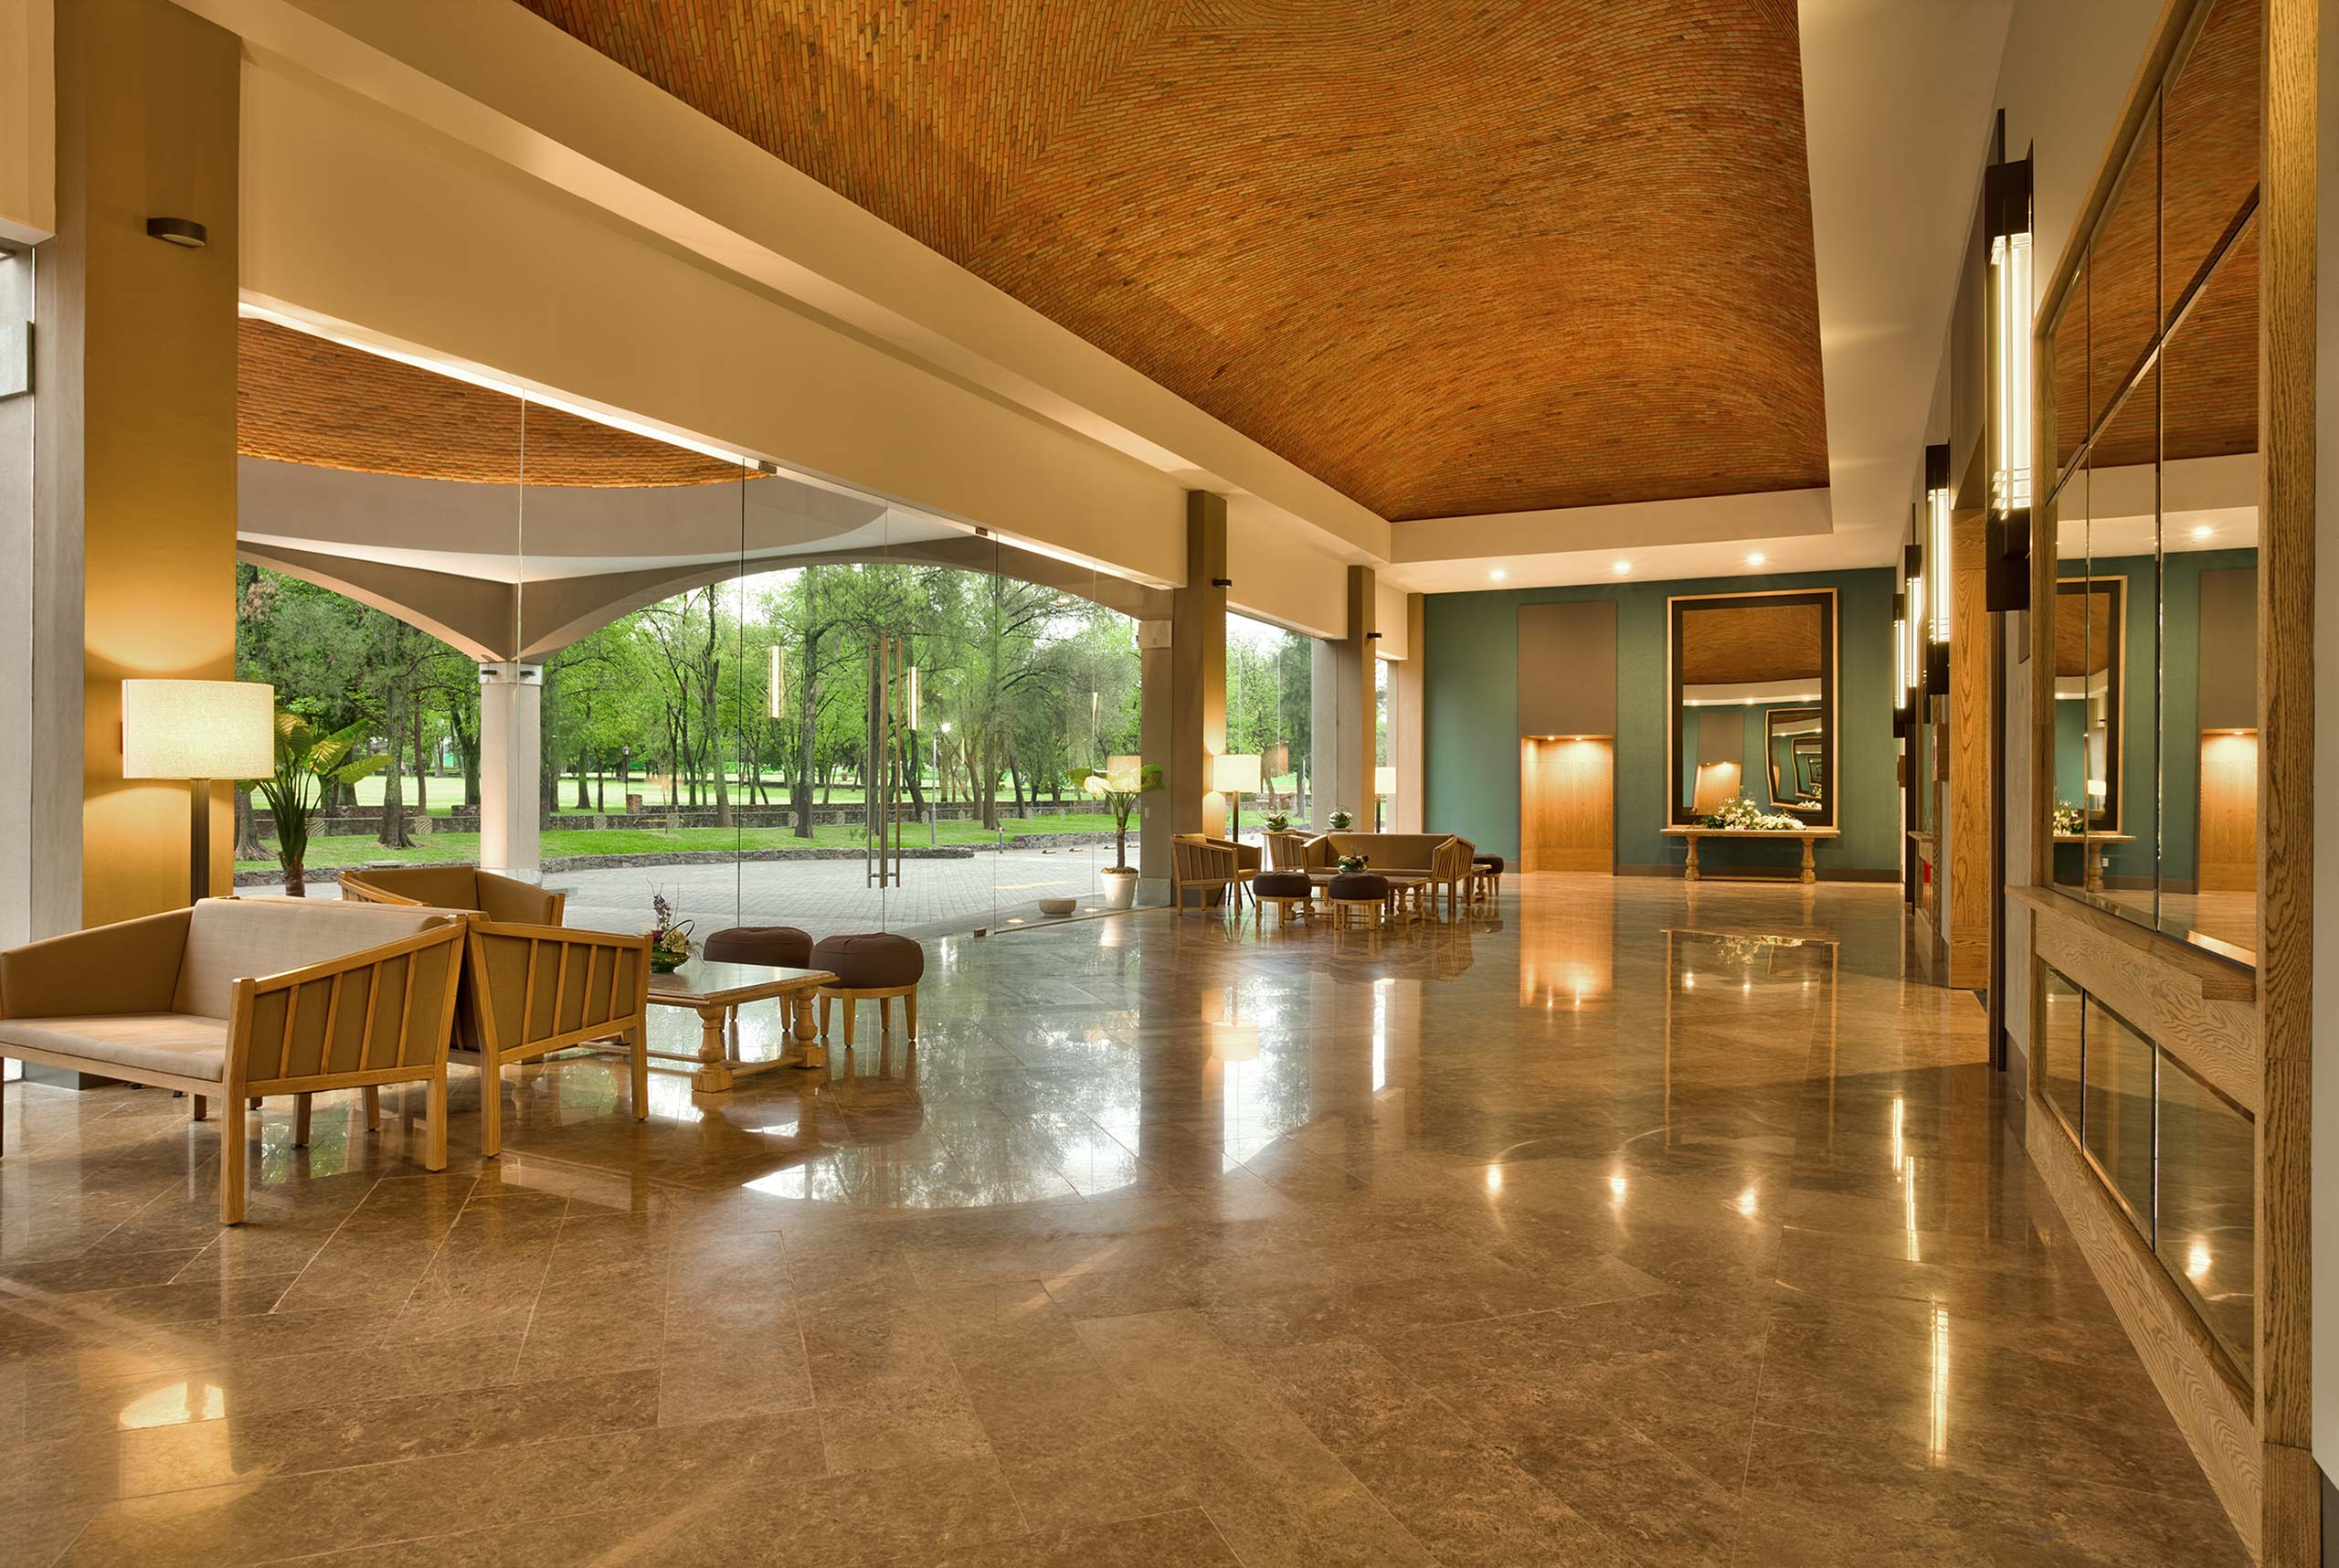 Interior conference Hotel Hacienda Jurica by Brisas Queretaro